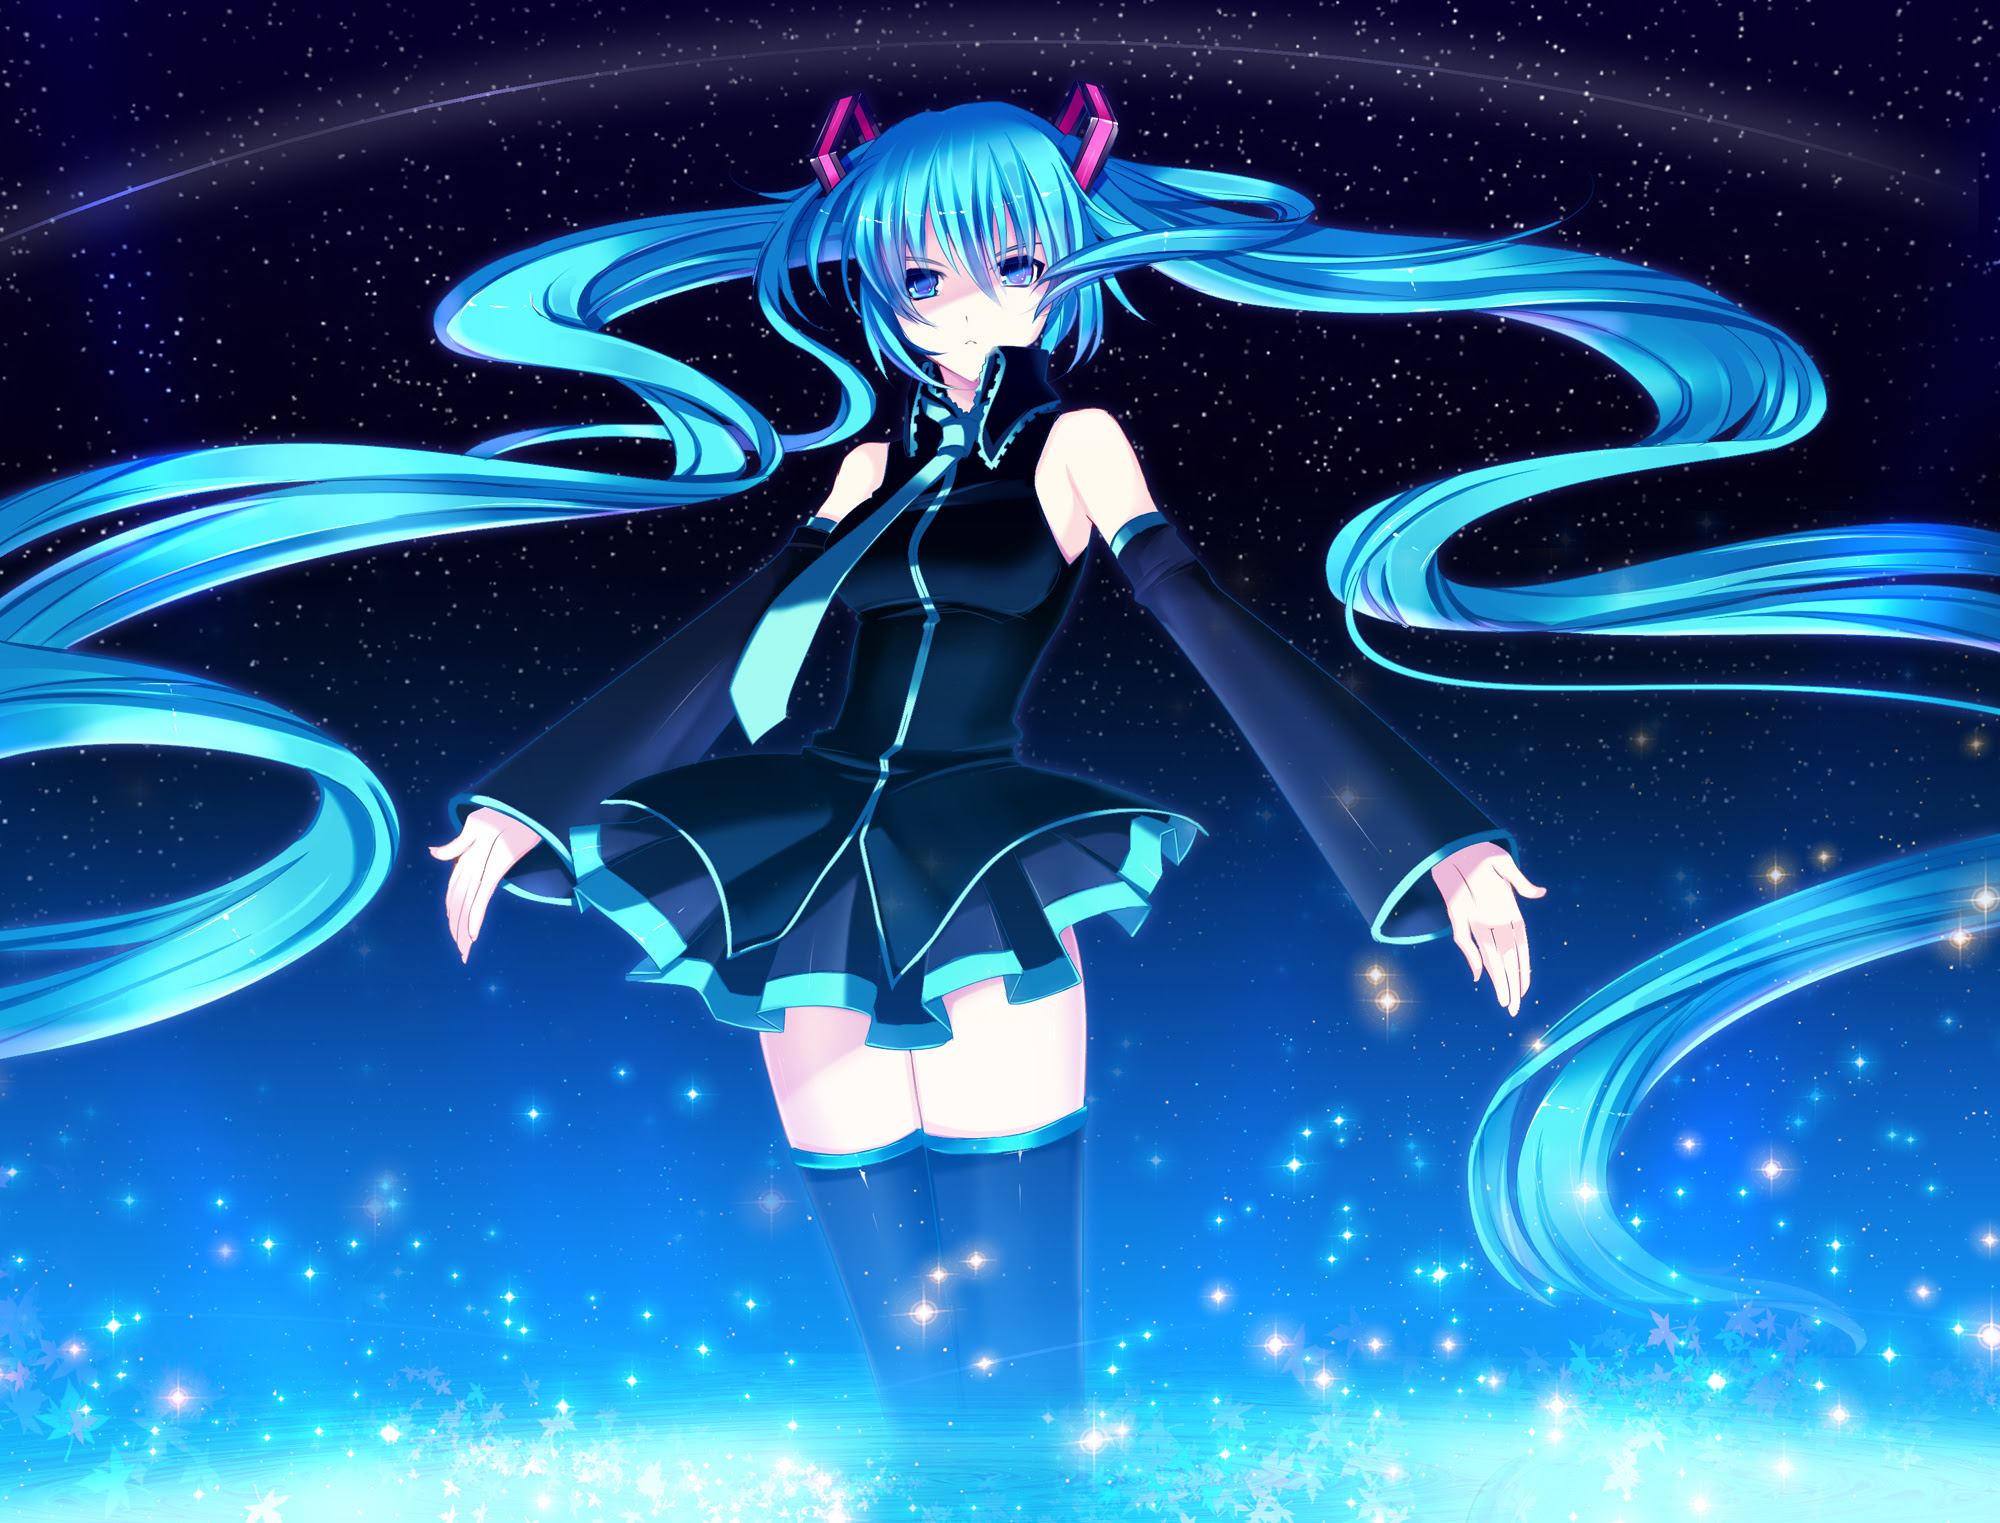 Anime - Vocaloid  - Hatsune Miku - Sky - Night - Stars - Twintails - Aqua Hair - Aqua Eyes - Skirt - Tie - Dress Papel de Parede